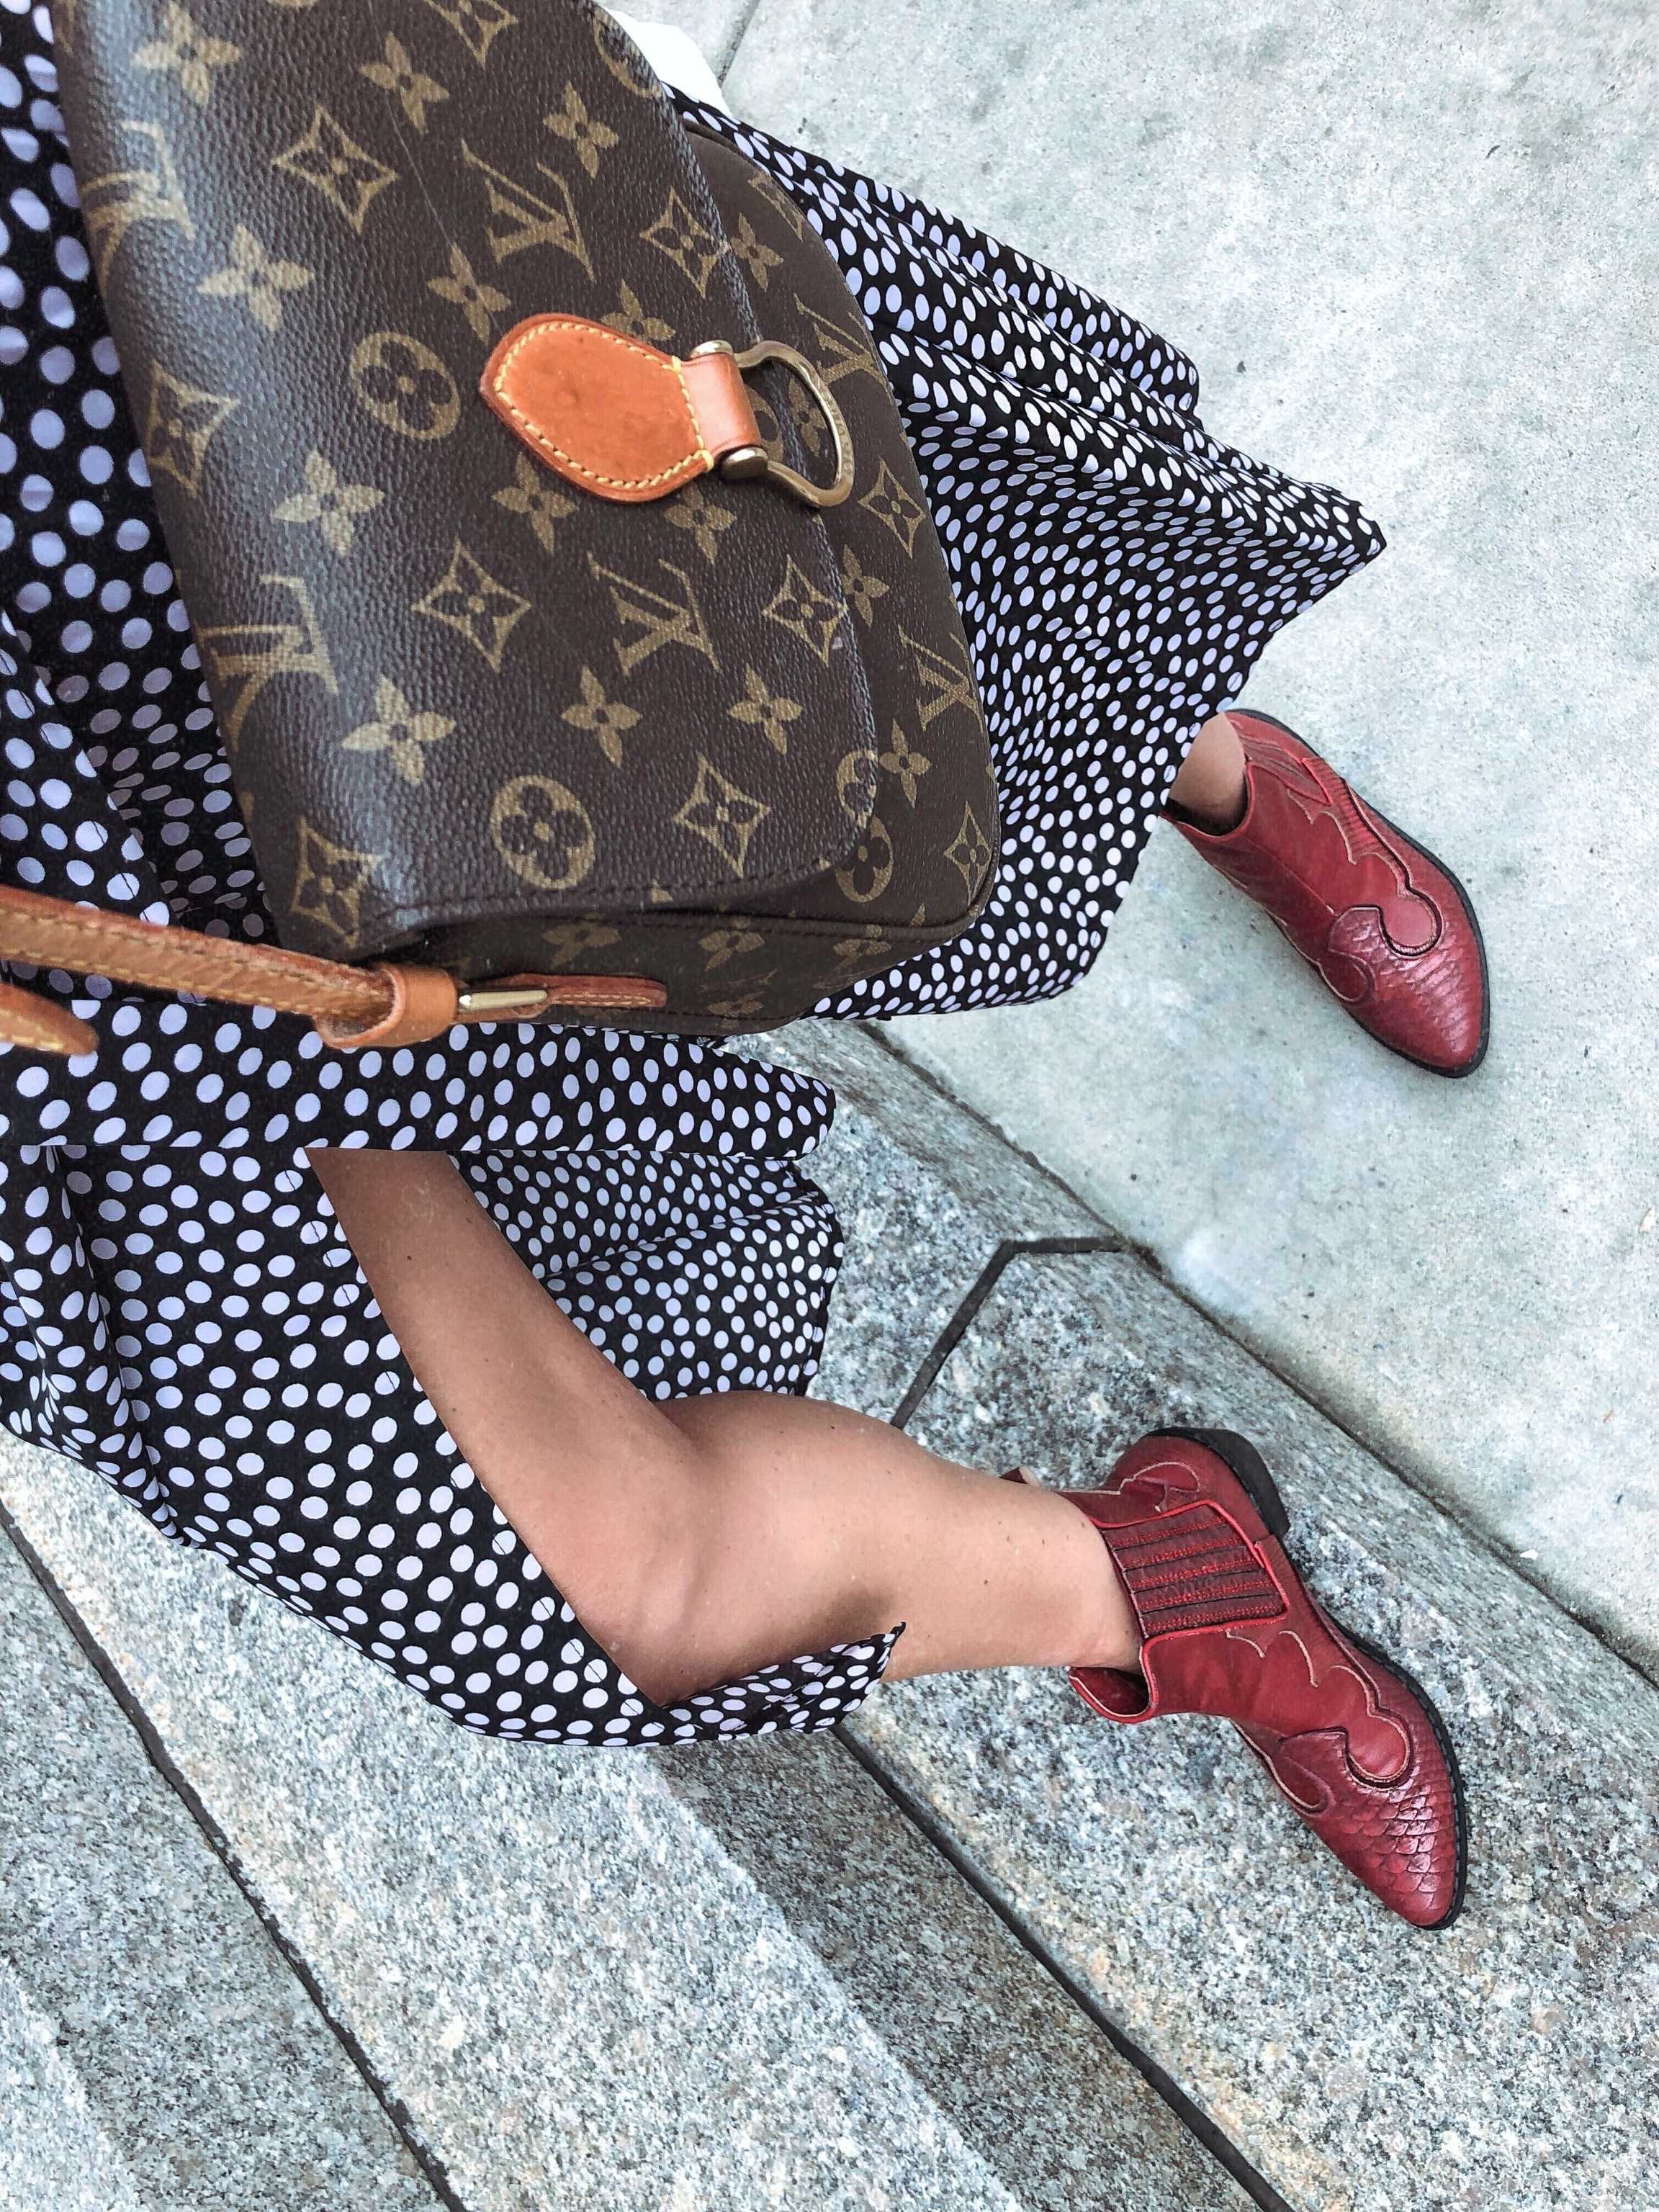 Yeehaw! Cowboy Boots Are The It-Girl Boot